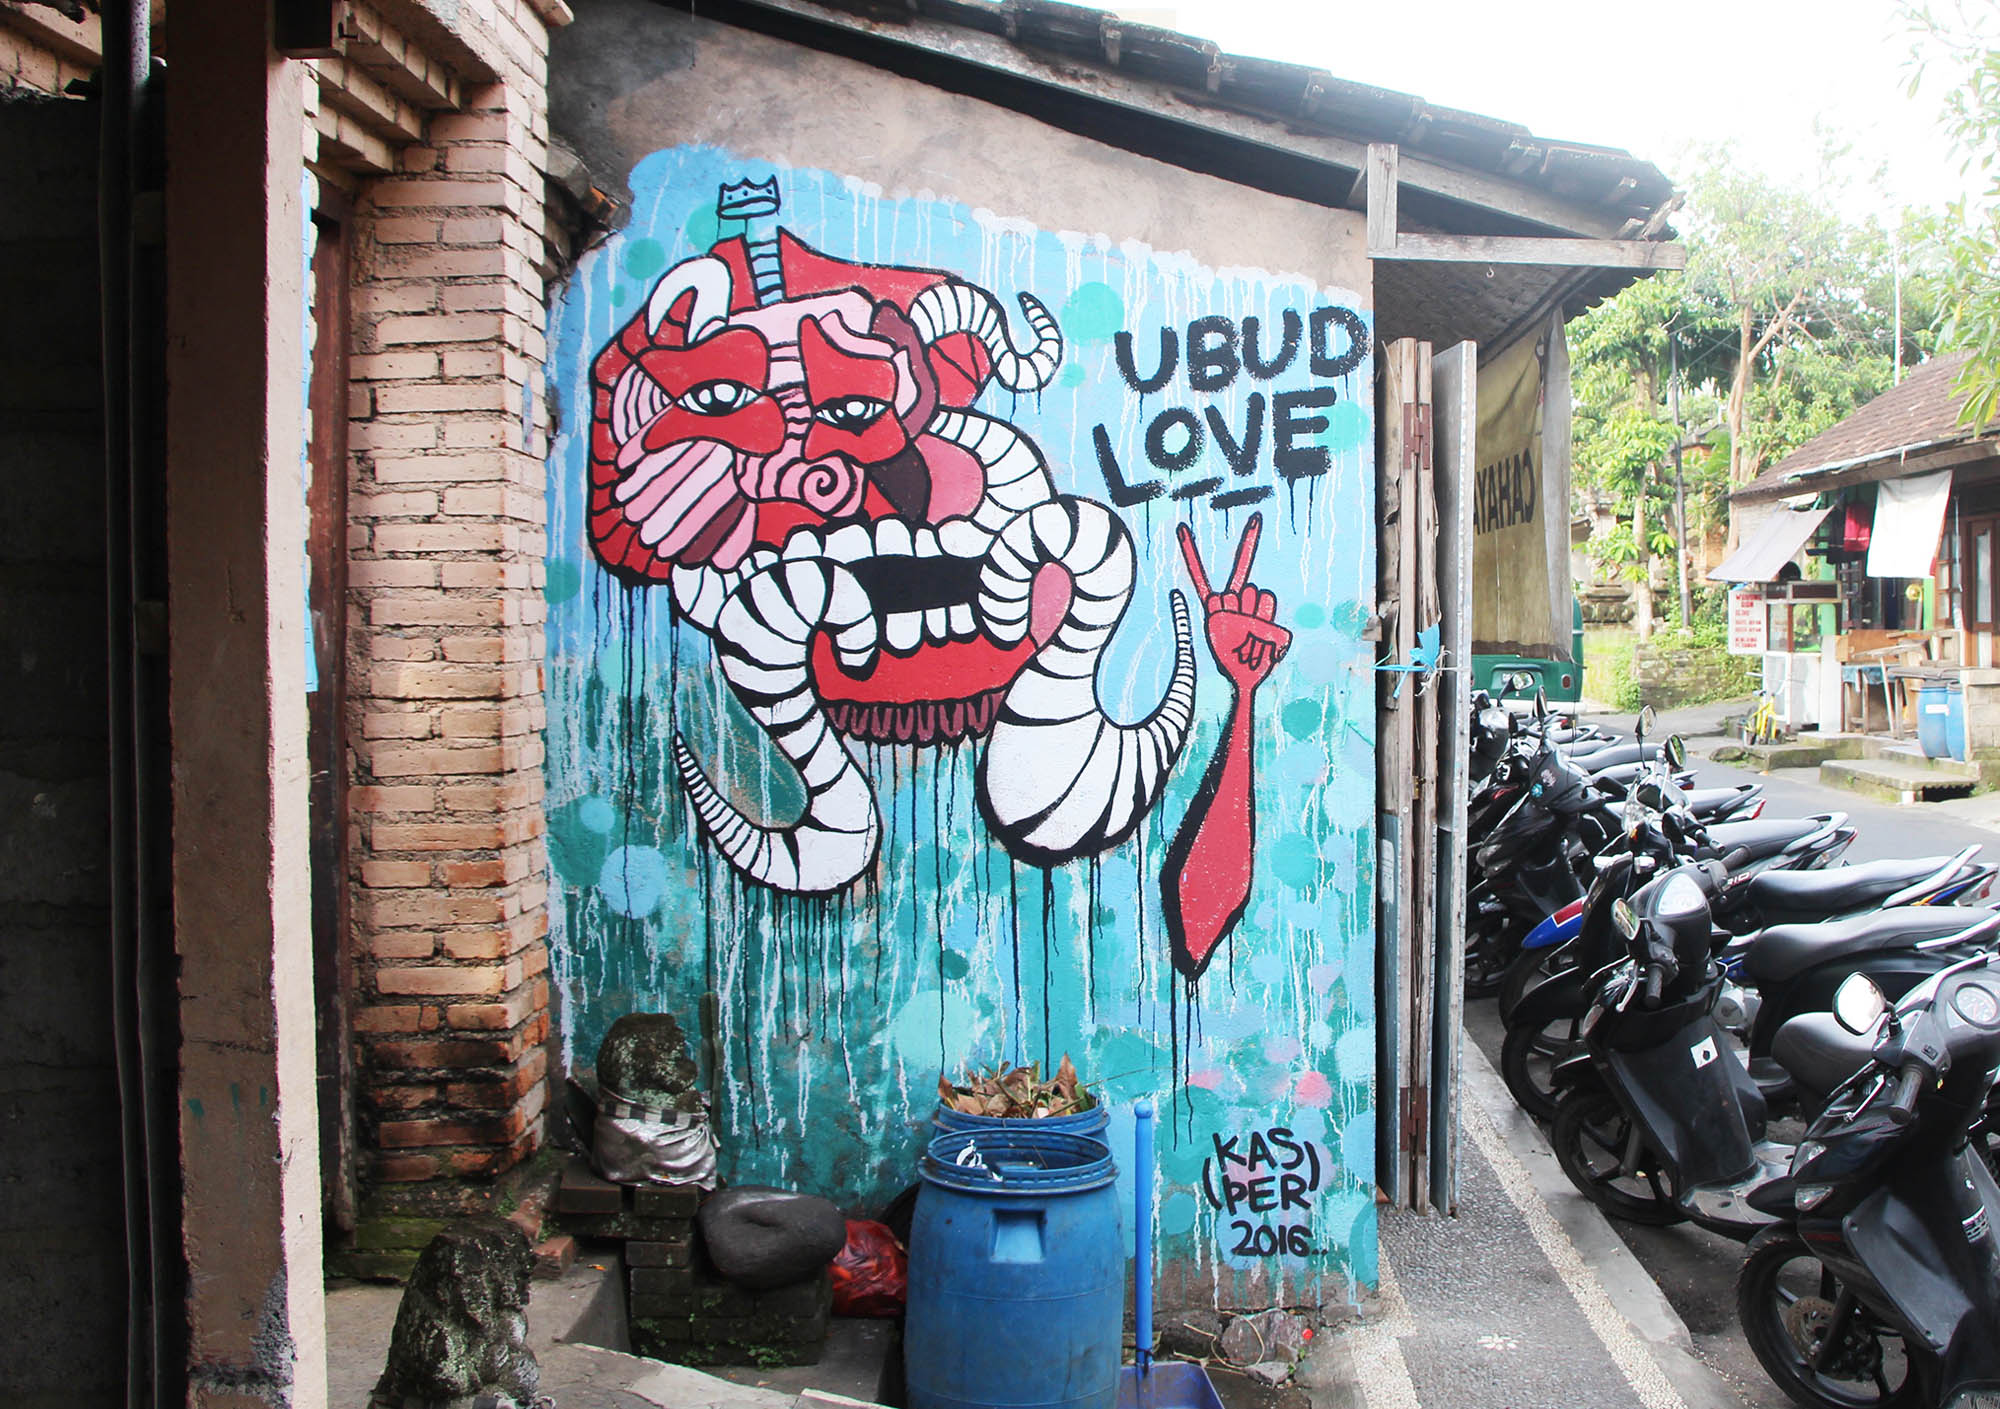 Showing love for the town painted in Ubud, Bali as a part of my artist residency with Cata Odata